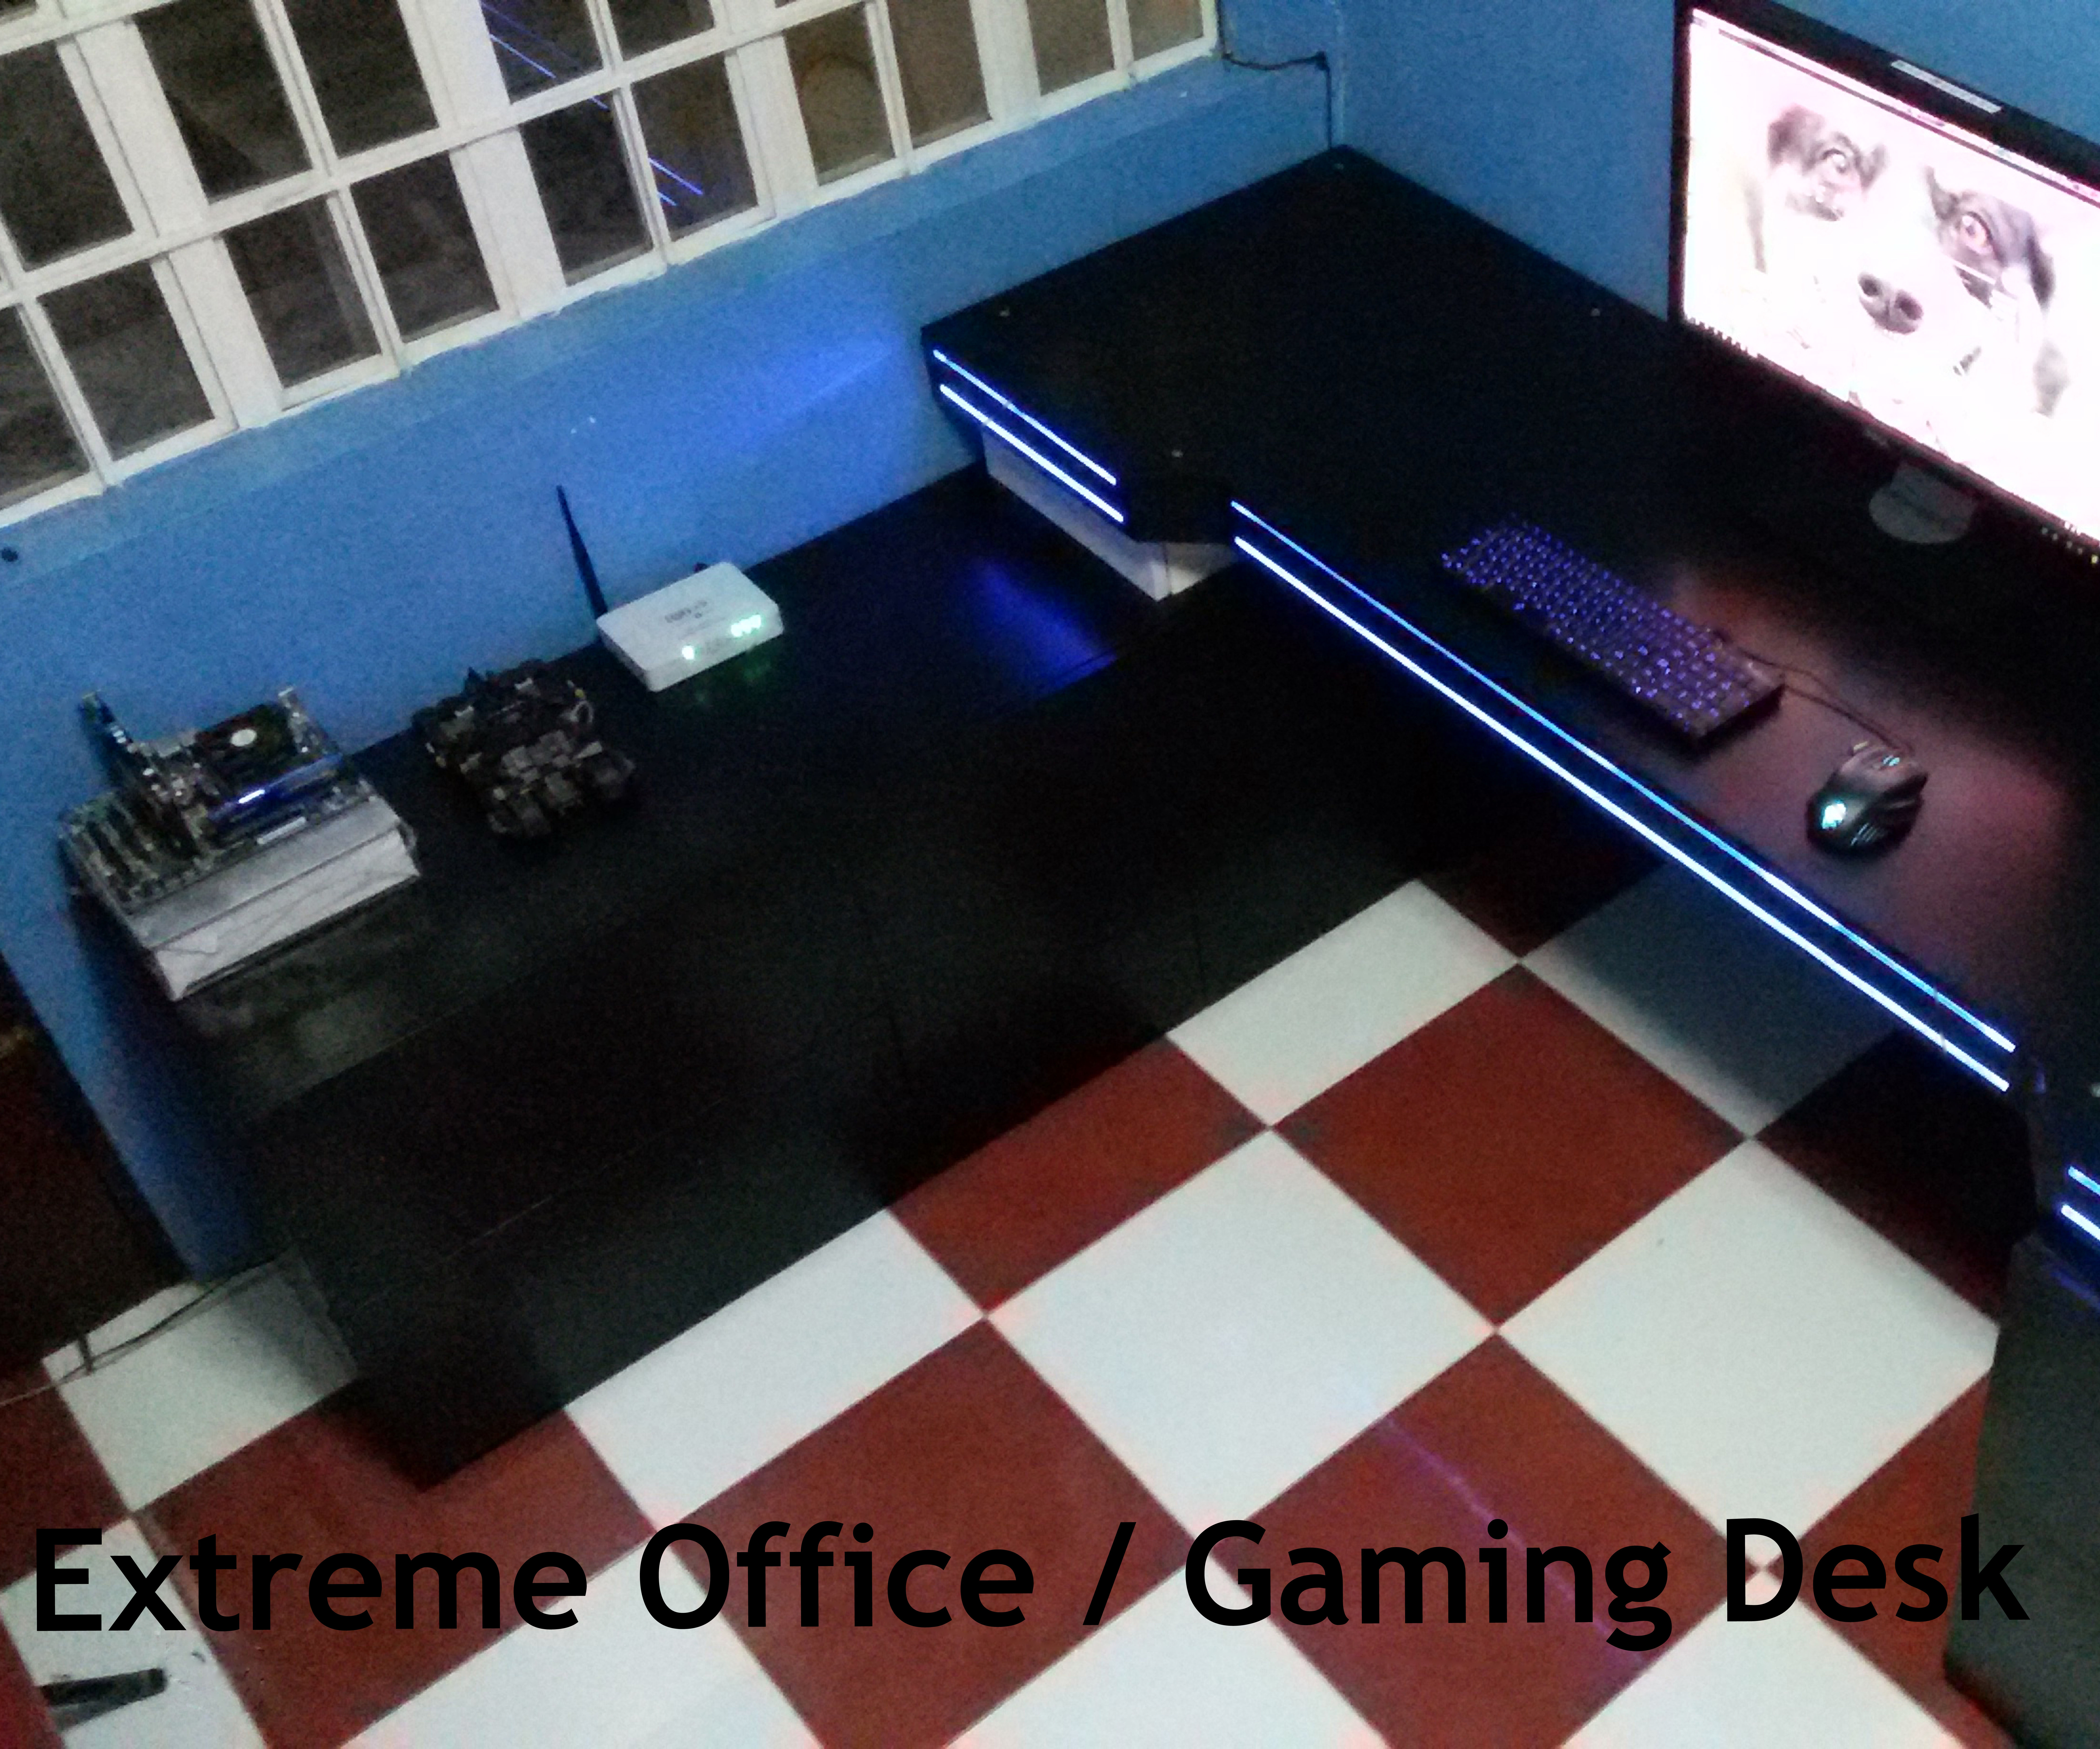 Extreme Office/Gaming Desk!